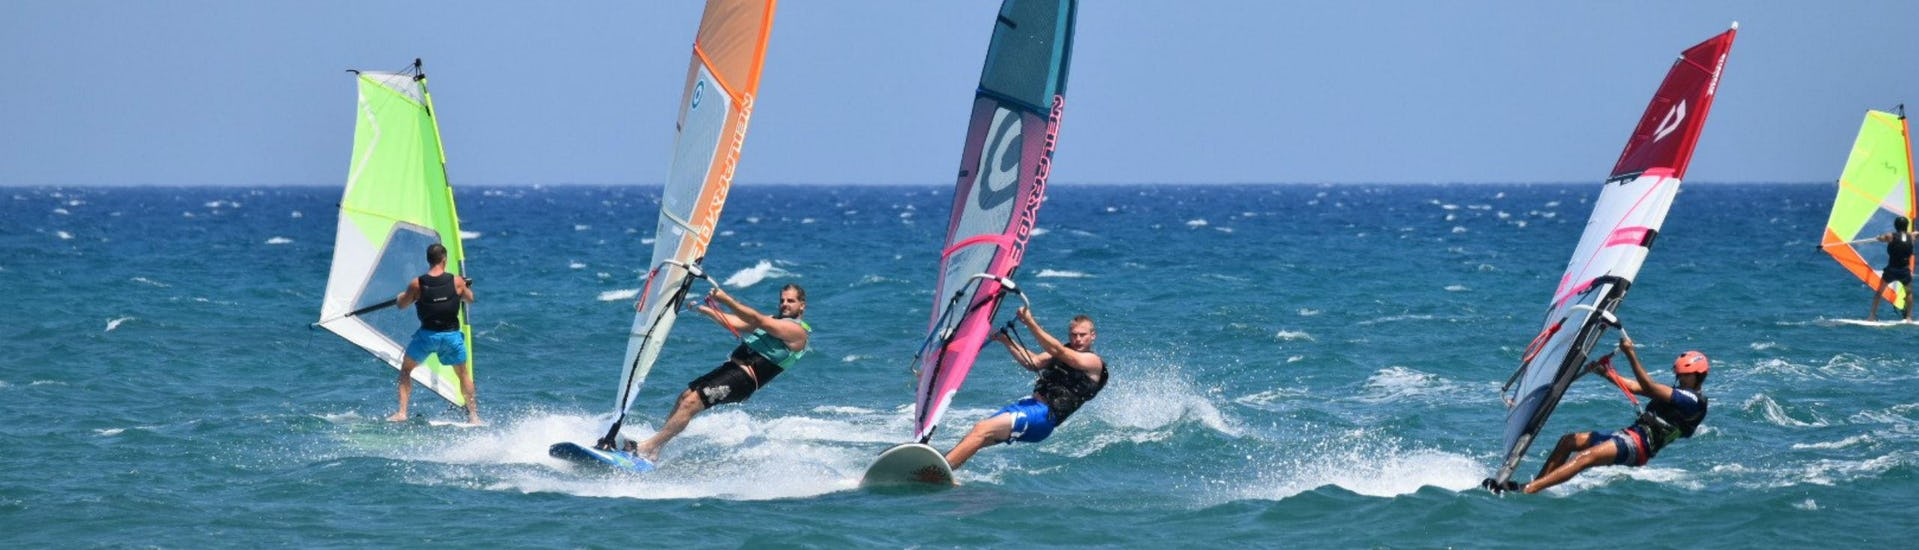 Windsurfing Lessons for Adults - Advanced